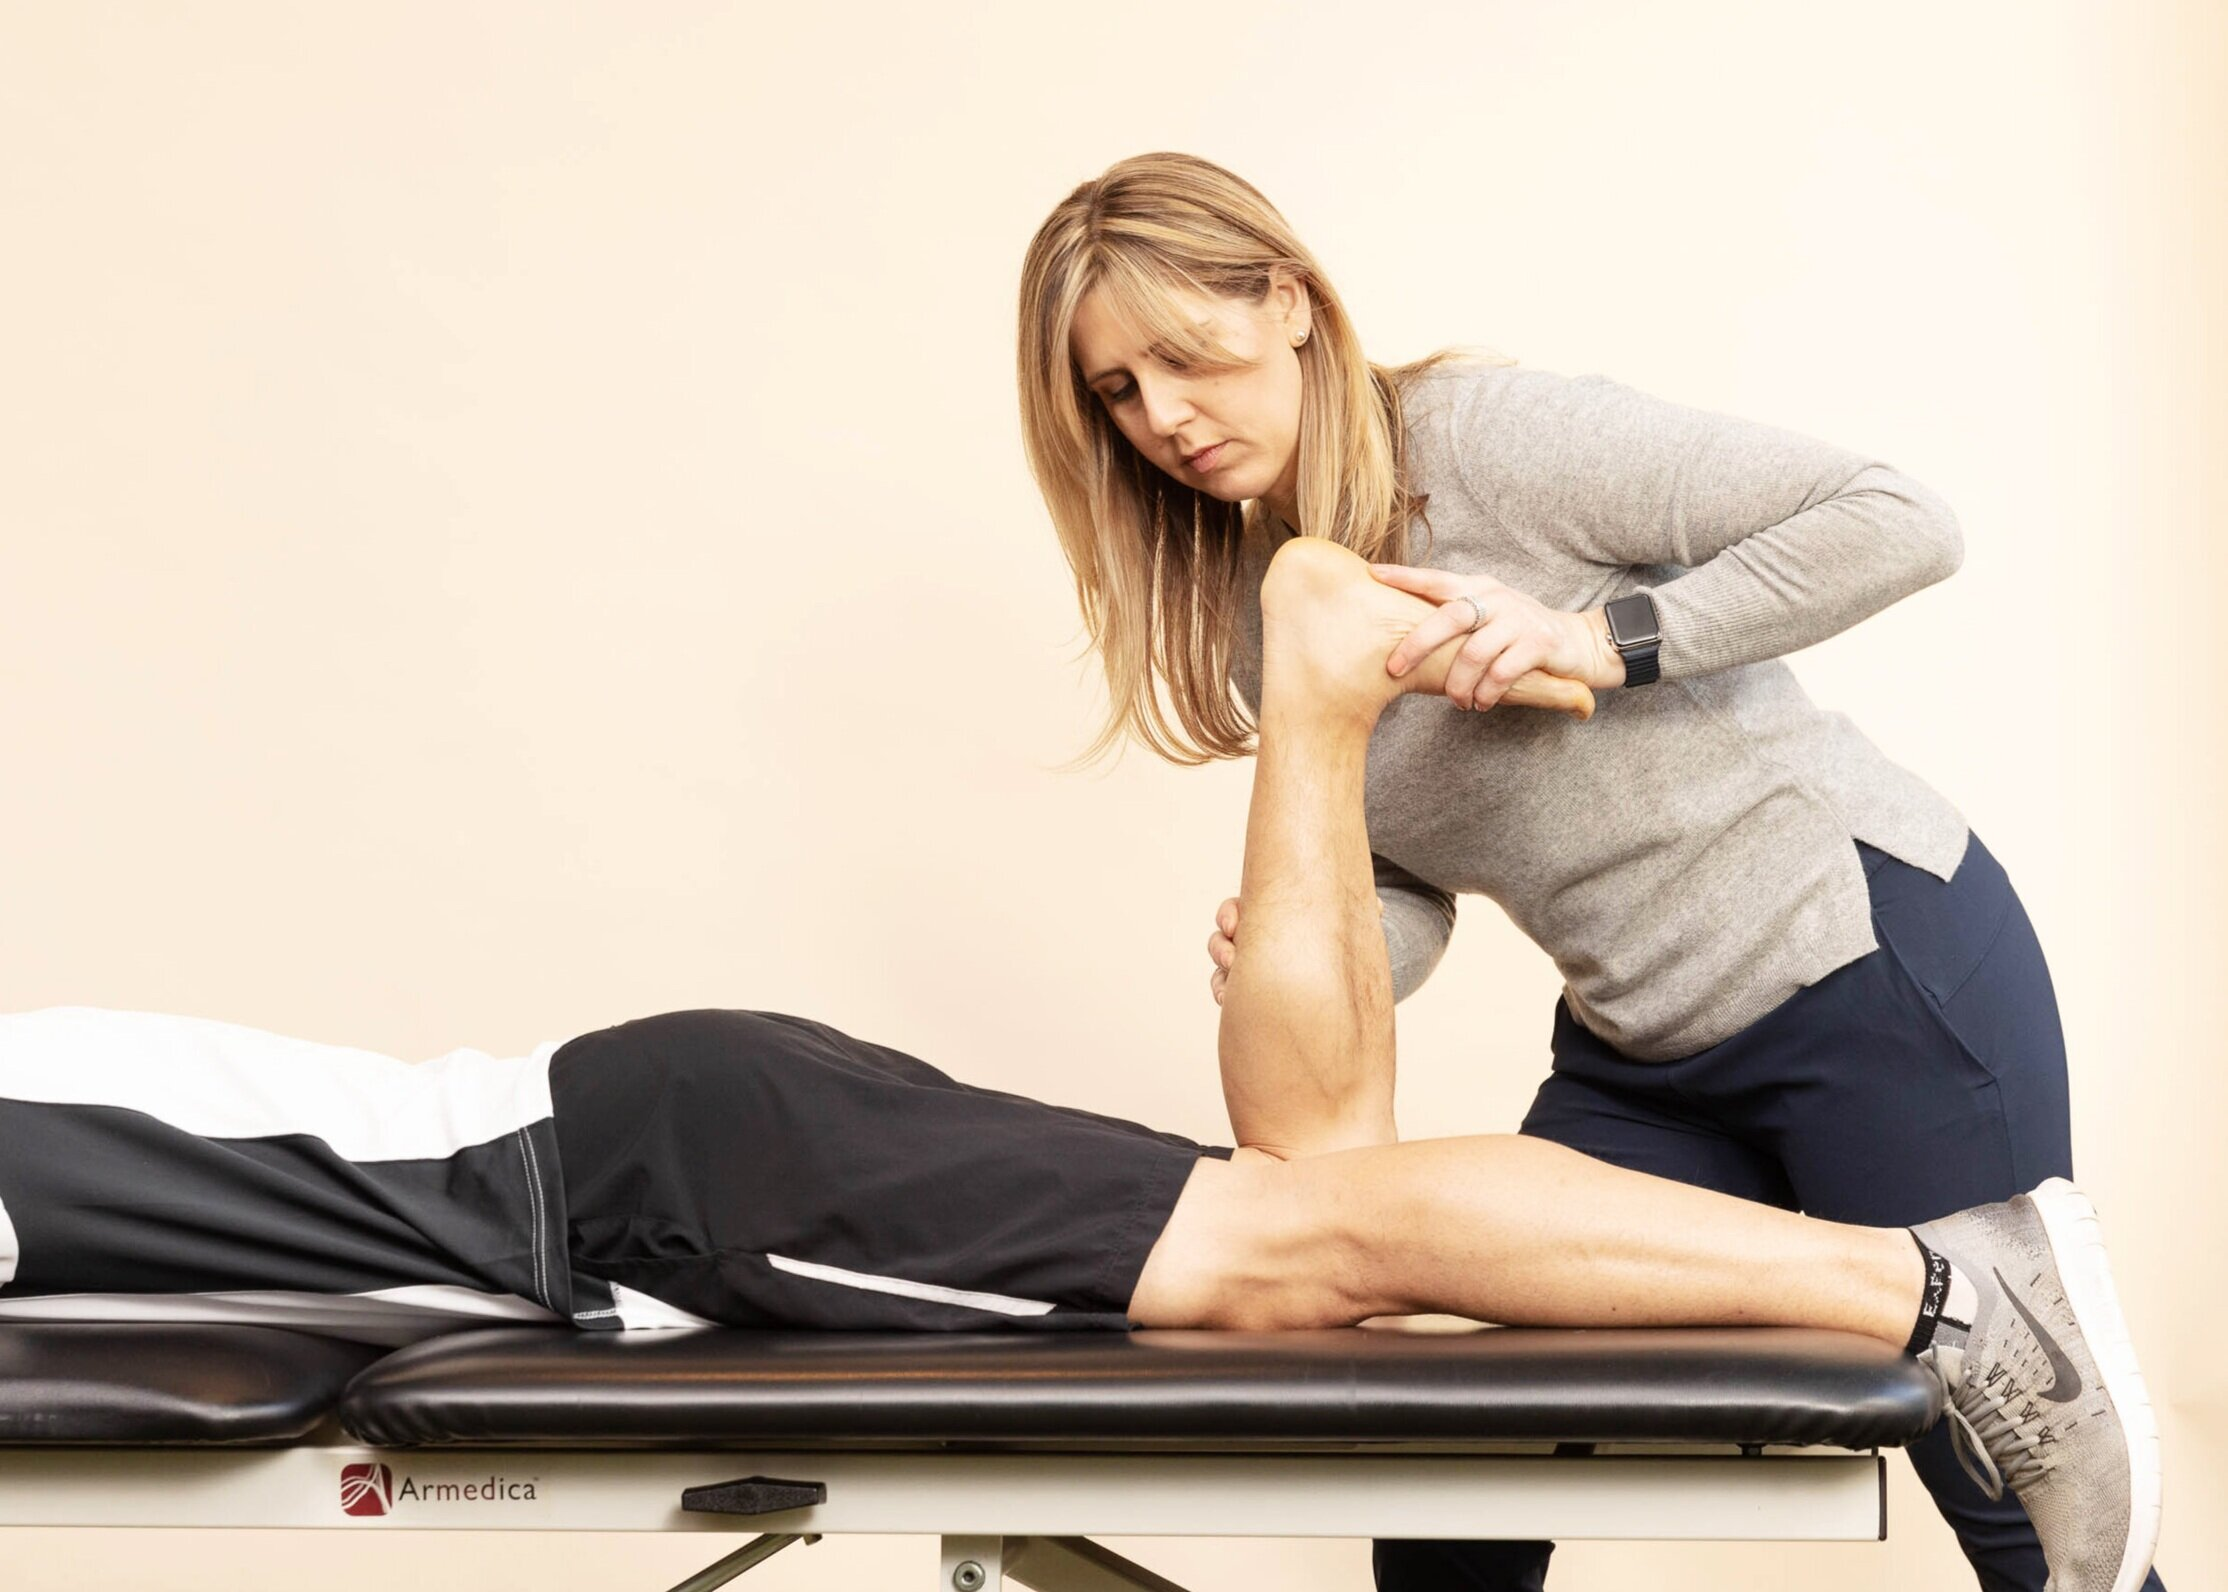 One-on-One Physical Therapy and Athletic Training. - Individual care and patient-centric treatment in San Francisco, resulting in the most effective, evidence-based outcomes.